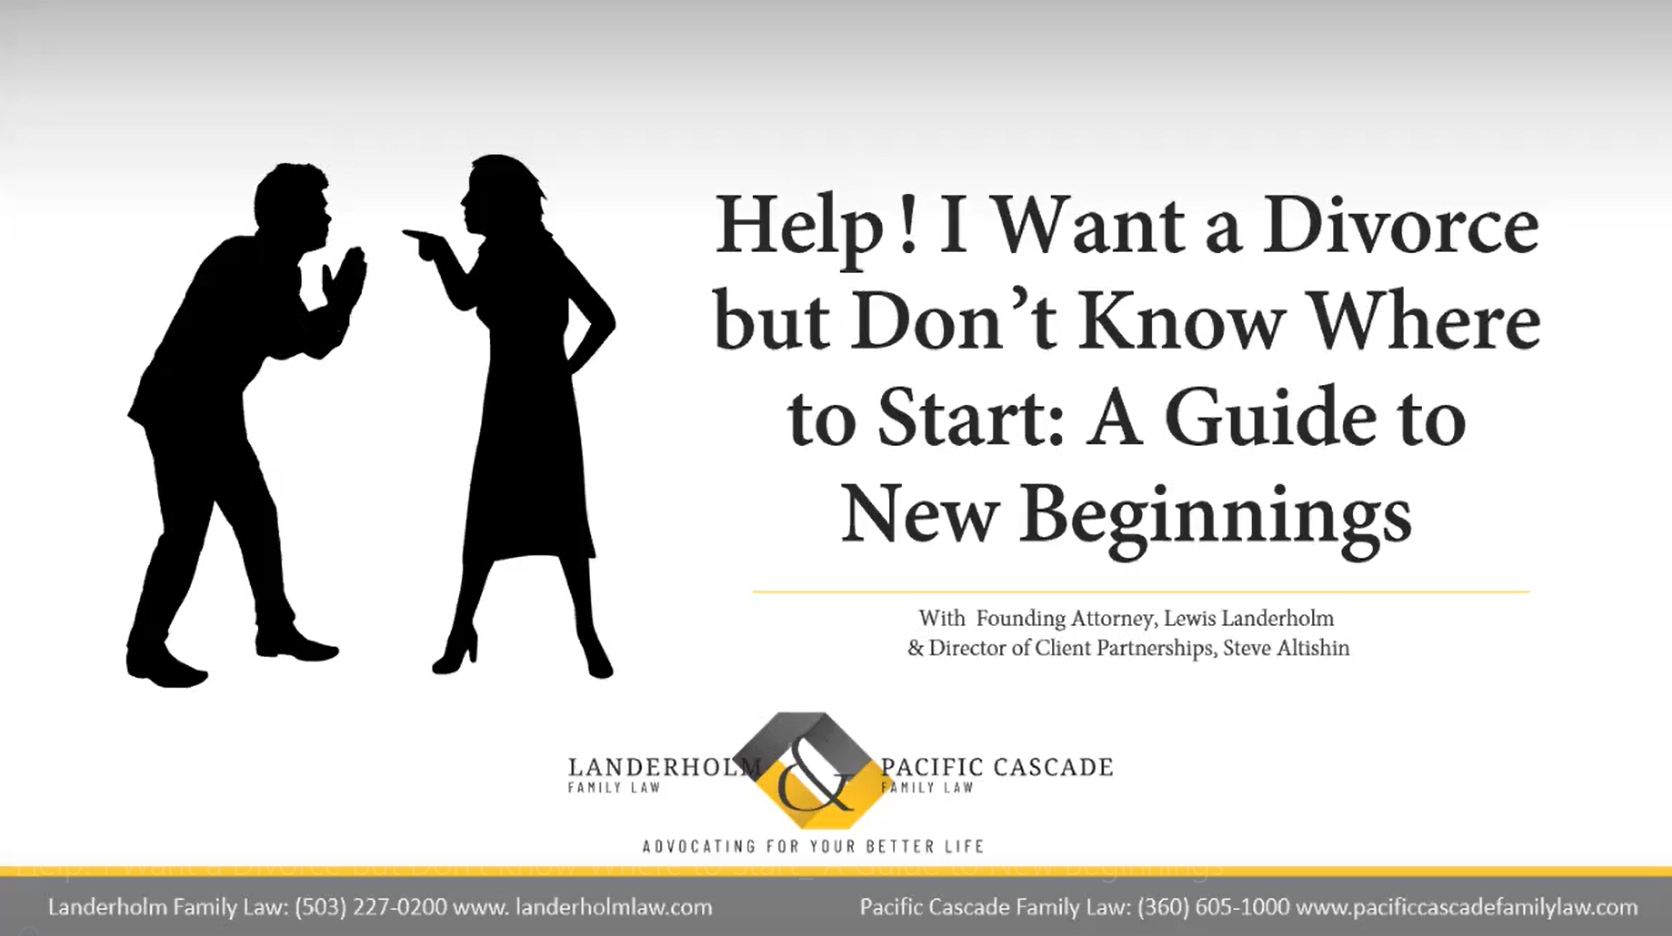 "Landerholm Family Law & Pacific Cascade Family Law's past webinar ""Help! I Want a Divorce but Don't Know Where to Start: A Guide to New Beginnings"" with Founding Attorney Lewis Landerholm and Director of Client Partnerships Steve Altishin"